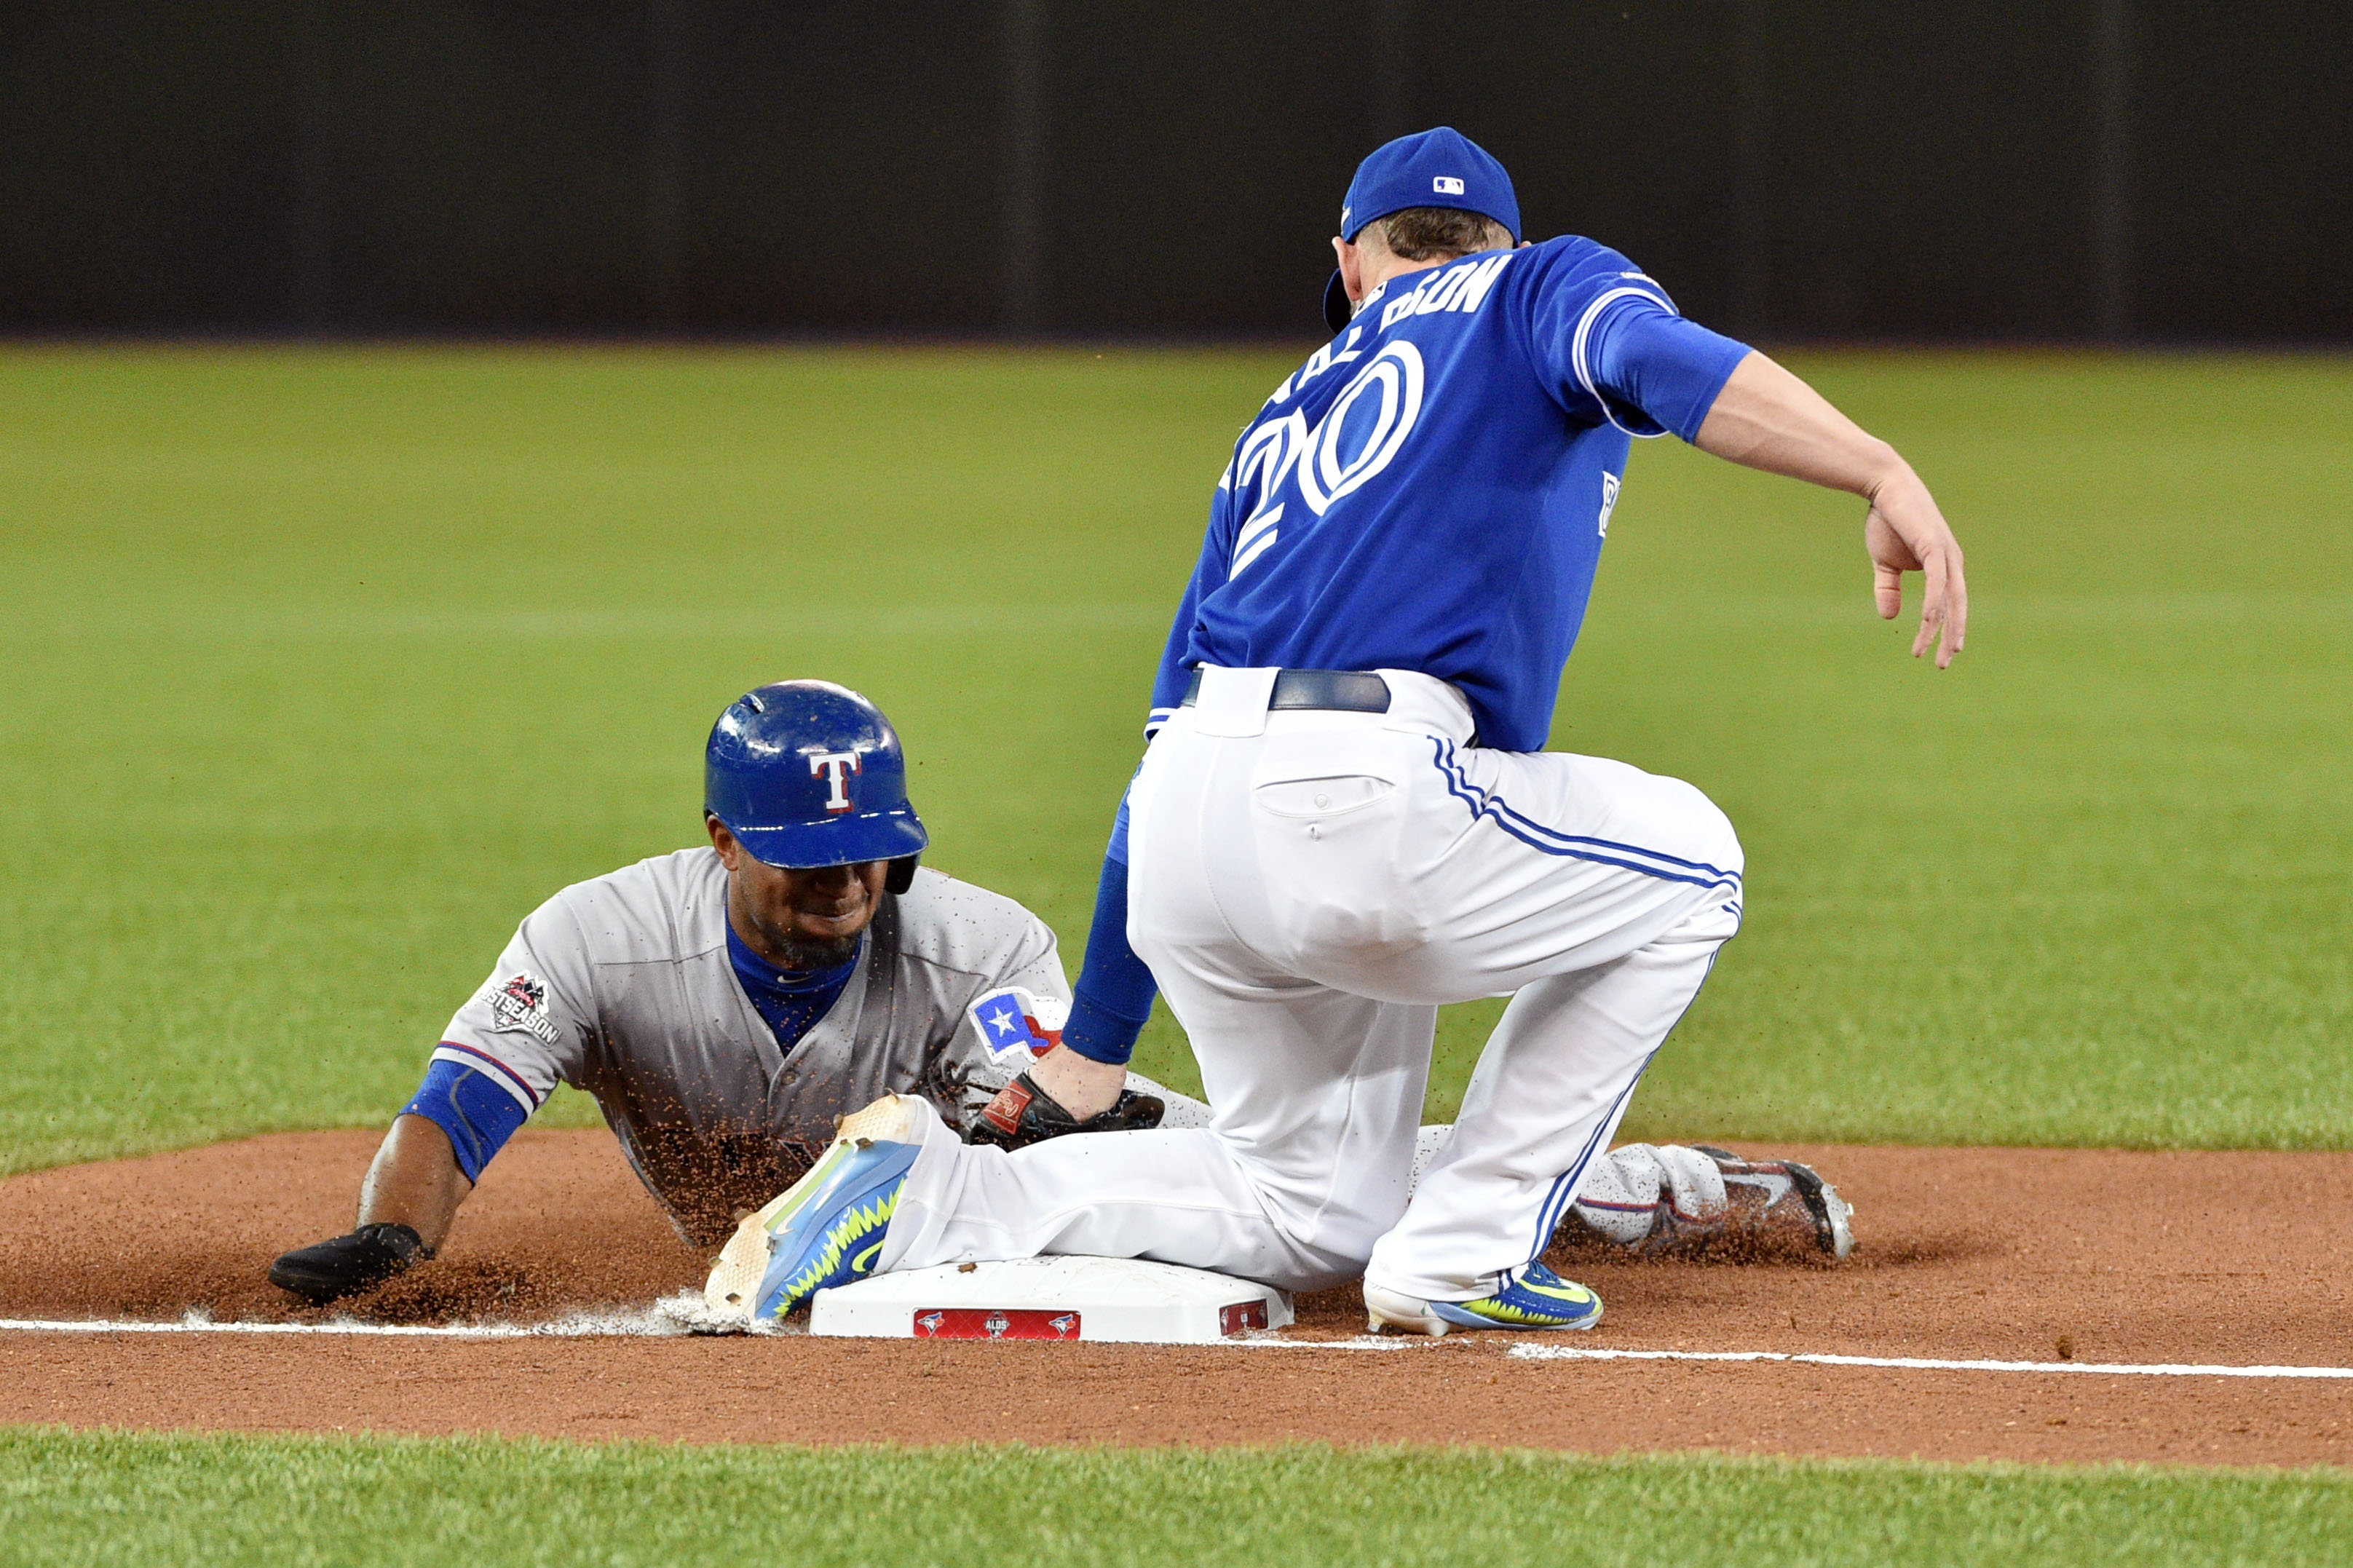 Rangers shortstop Elvis Andrus (left) is tagged out on a stolen base attempt by Blue Jays third baseman Josh Donaldson in the second inning. (Photo: Nick Turchiaro, USA TODAY Sports)